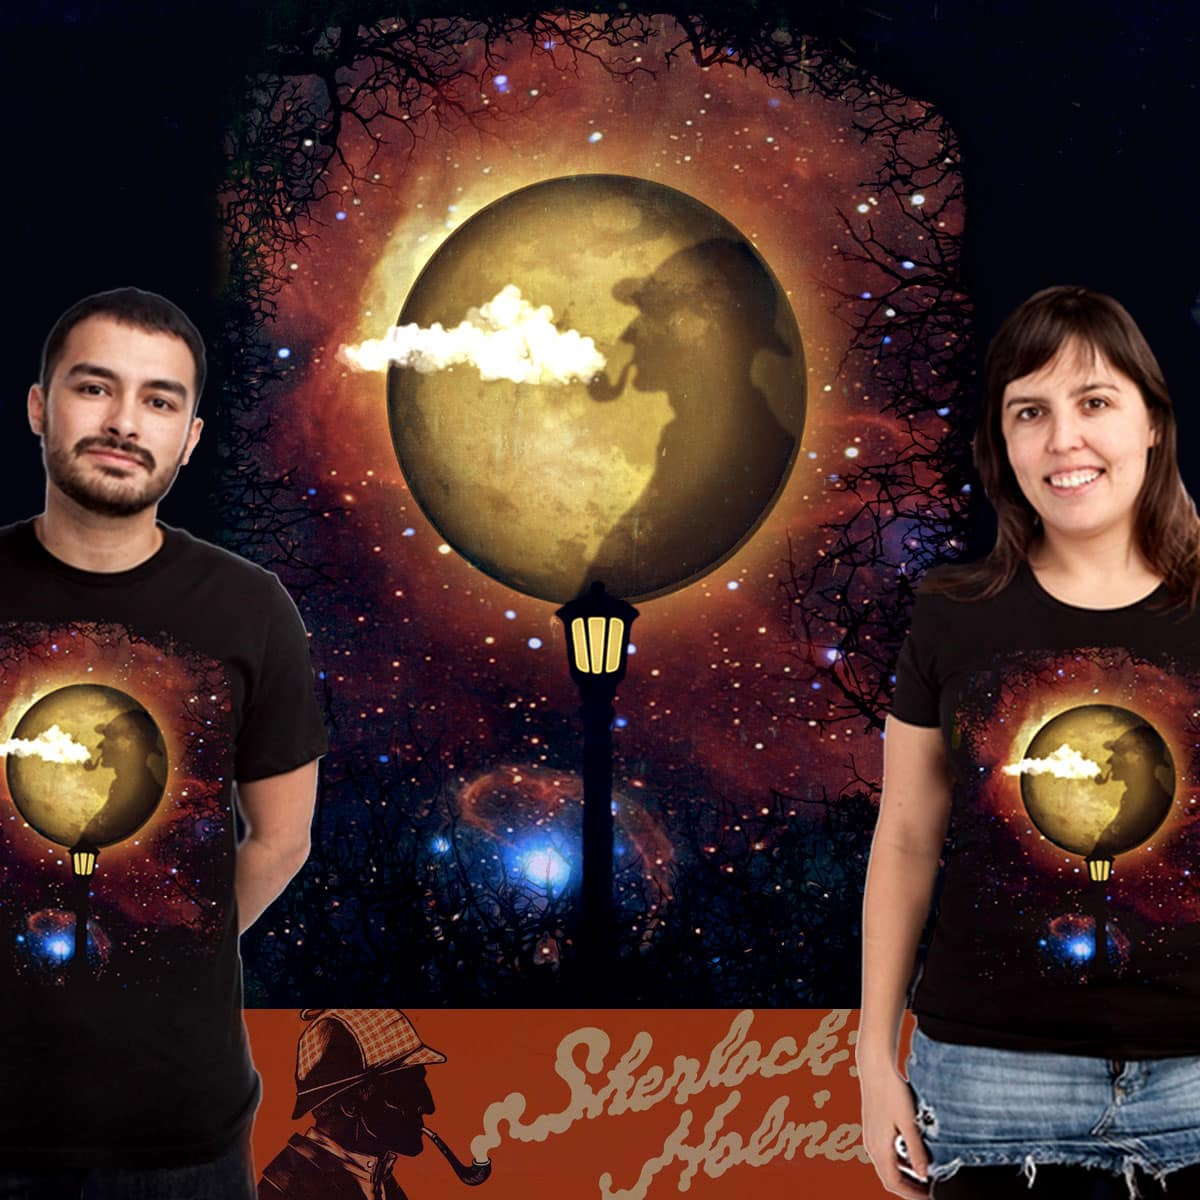 Magnifying Universe by ArTrOcItY on Threadless